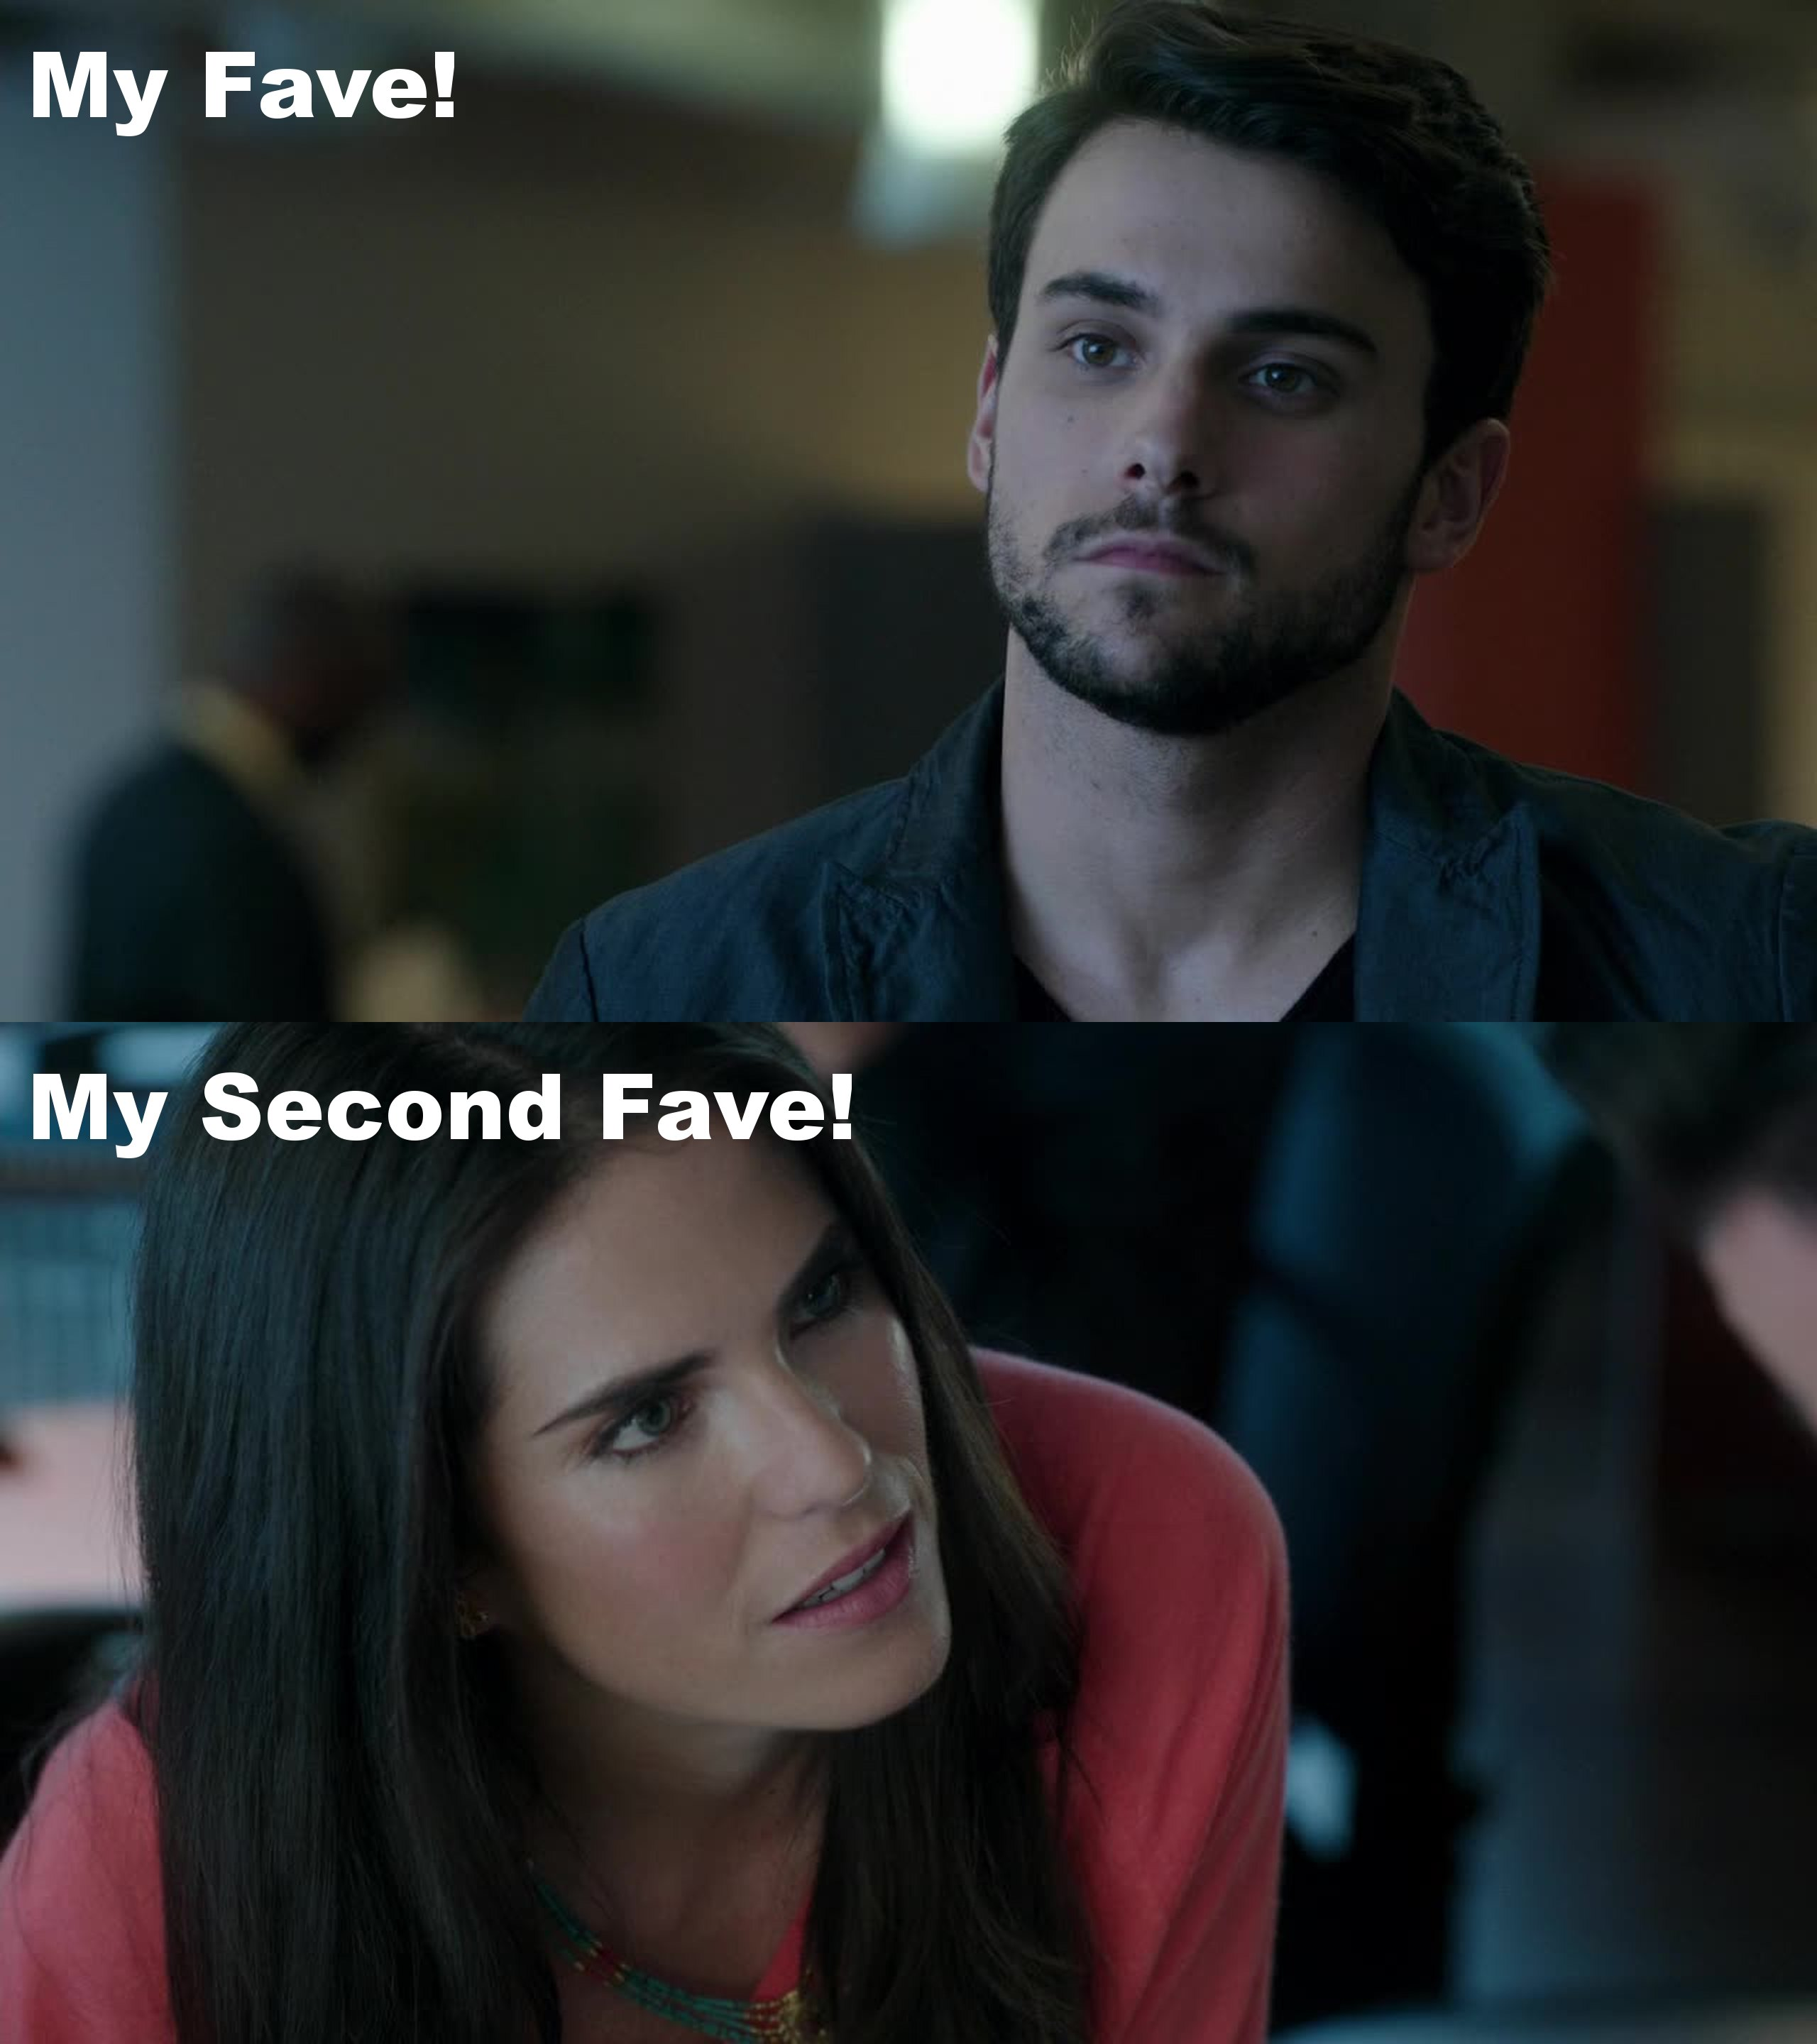 I just can't with this show...IT'S SO GOOD!!!  Every character is so damn intriguing and the writing is JUST PURE well written.  Jack Falahee portrays Connor ...As I said before his one of my fave but wow he can play his role so damn well. Omg that guy that had a affair with him...i didn't see that coming...SHOCKED!  Laurel: i really want to see more of her...Interesting character  Asher: Enjoying him with his one liners.  Wes/Rebecca: I'm starting to like those two....Really sweet that Wes is taking care of her...what a gentlemen.  Michaela: Prom Queen hahaha....I liked her in this episode.  That ending scene with Annalise...taking her wig off and makeup was interesting ...Then showed Sam a picture of his area on Lila's phone was beyond fantastic! Annalise you go girl!  MORE MORE MORE....this show is so addicting